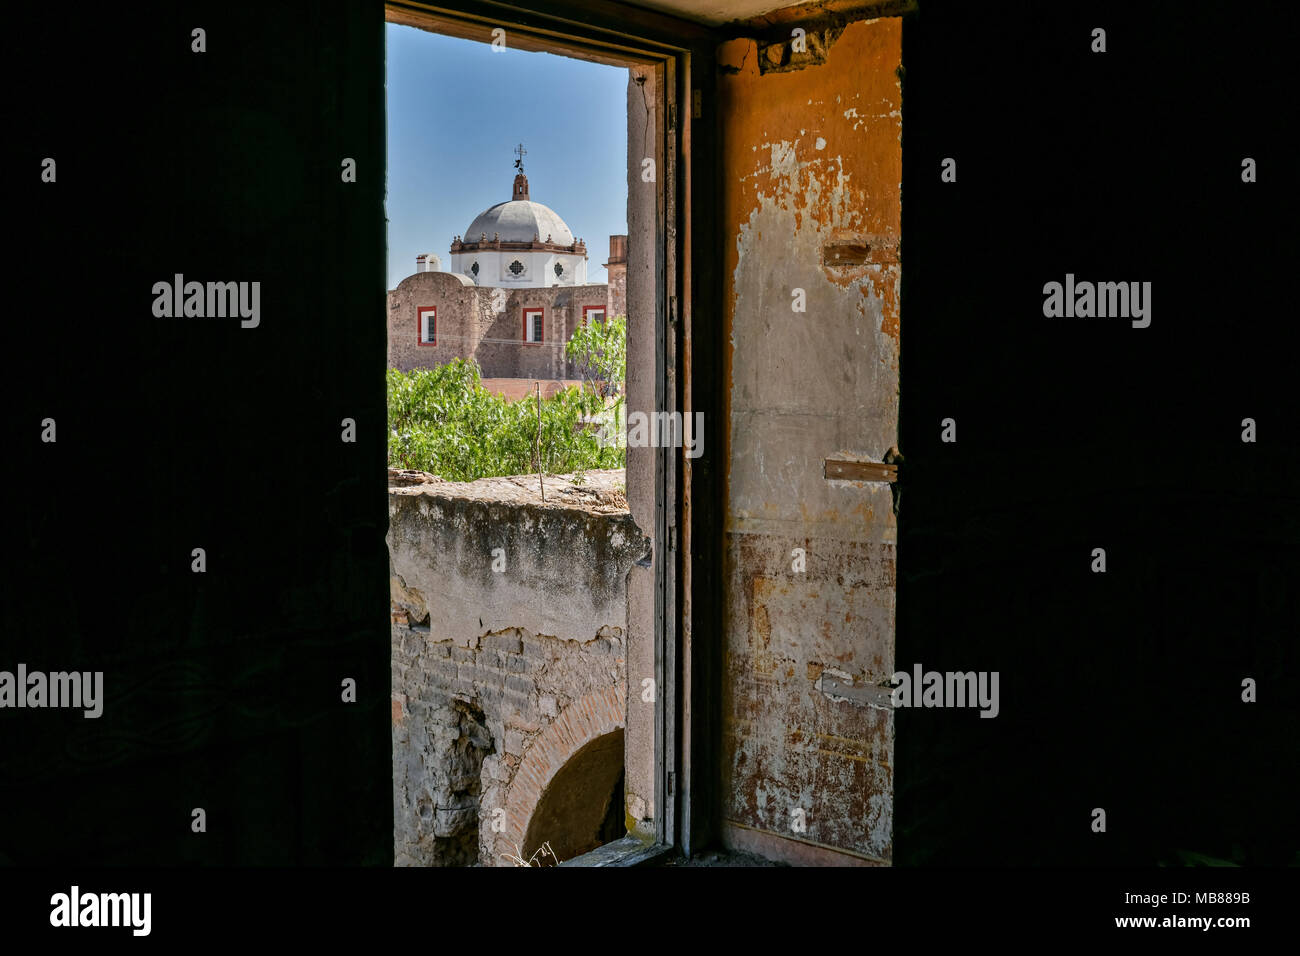 The Iglesia de San Diego De Alcalá as seen from a window in the Hacienda de Jaral de Berrio in Jaral de Berrios, Guanajuato, Mexico. The abandoned Jaral de Berrio hacienda was once the largest in Mexico and housed over 6,000 people on the property. - Stock Image